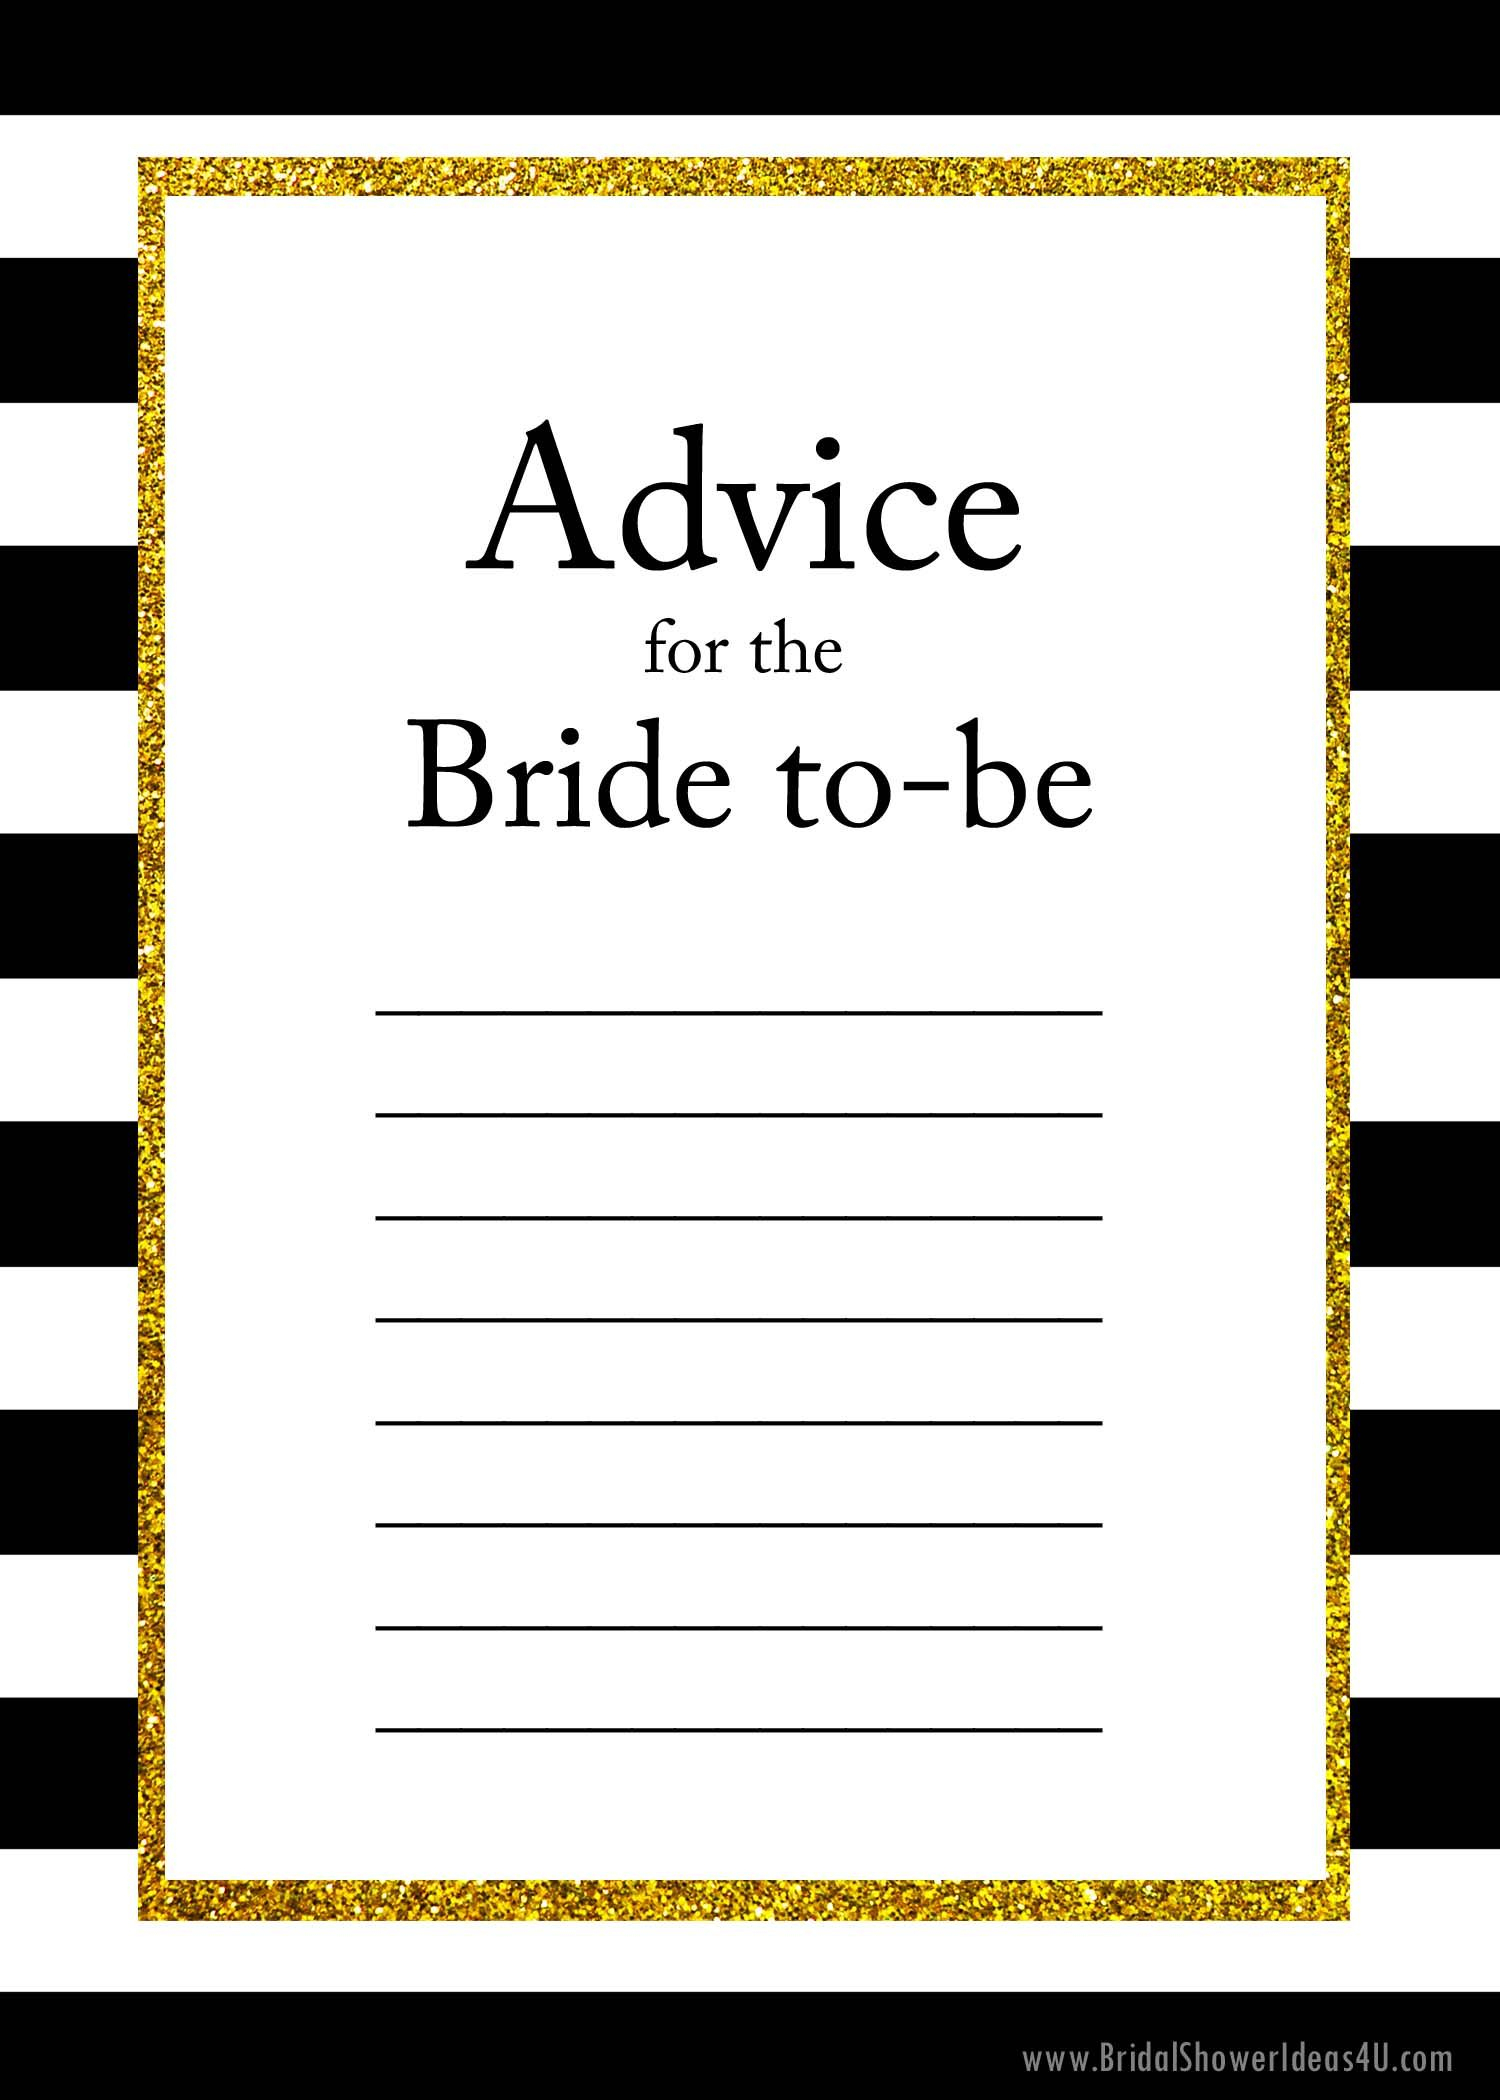 Free Printable Advice For The Bride To Be Cards | Maid Of Honor - Free Bridal Shower Printable Decorations